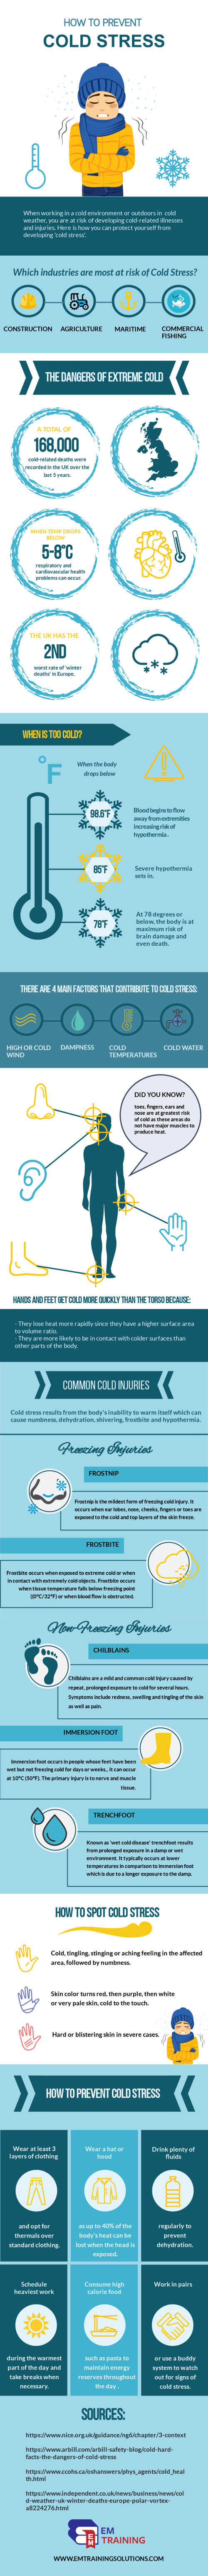 The Dangers of Cold Stress